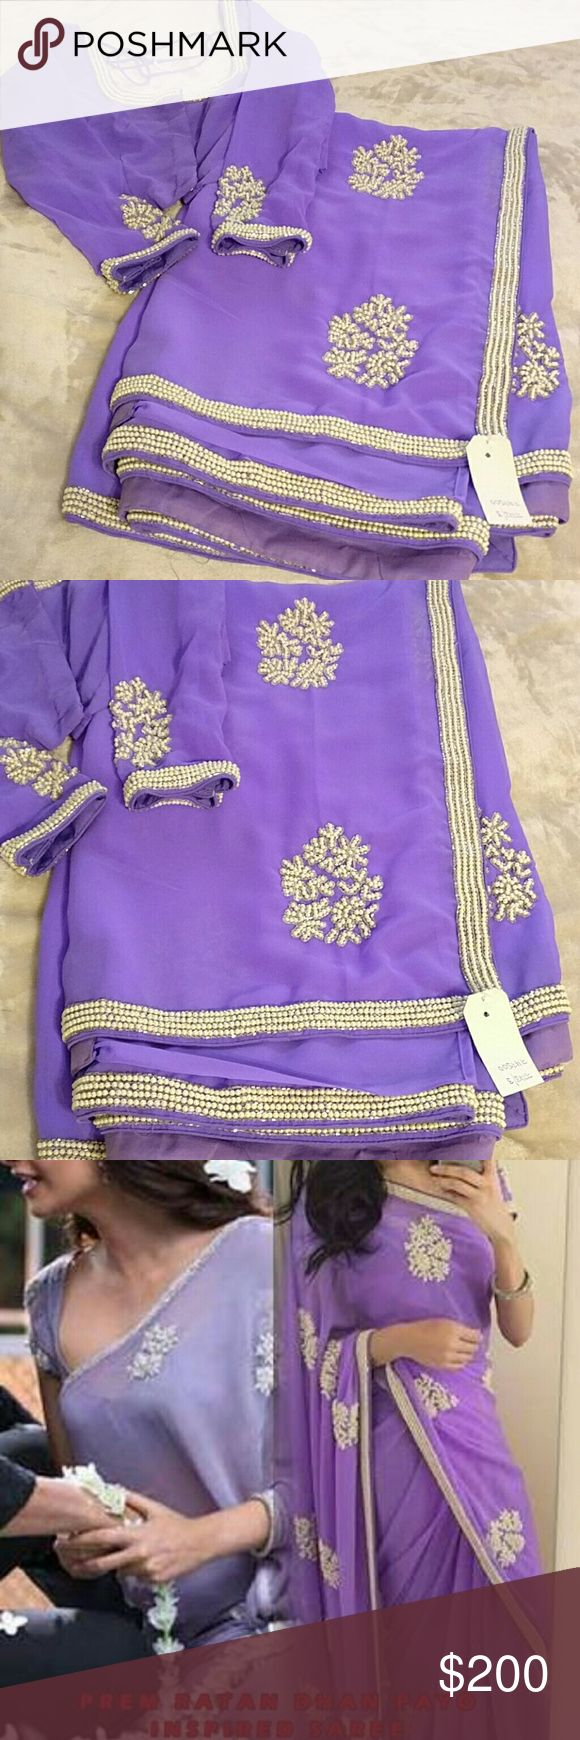 NWT Light purple saree with pearl work Brand new with tag. Inspired by Prem Ratan Dhan Payo Sonam Kapoor saree. Most gorgeous purple saree with pearl work. Blouse is size 36. Dresses